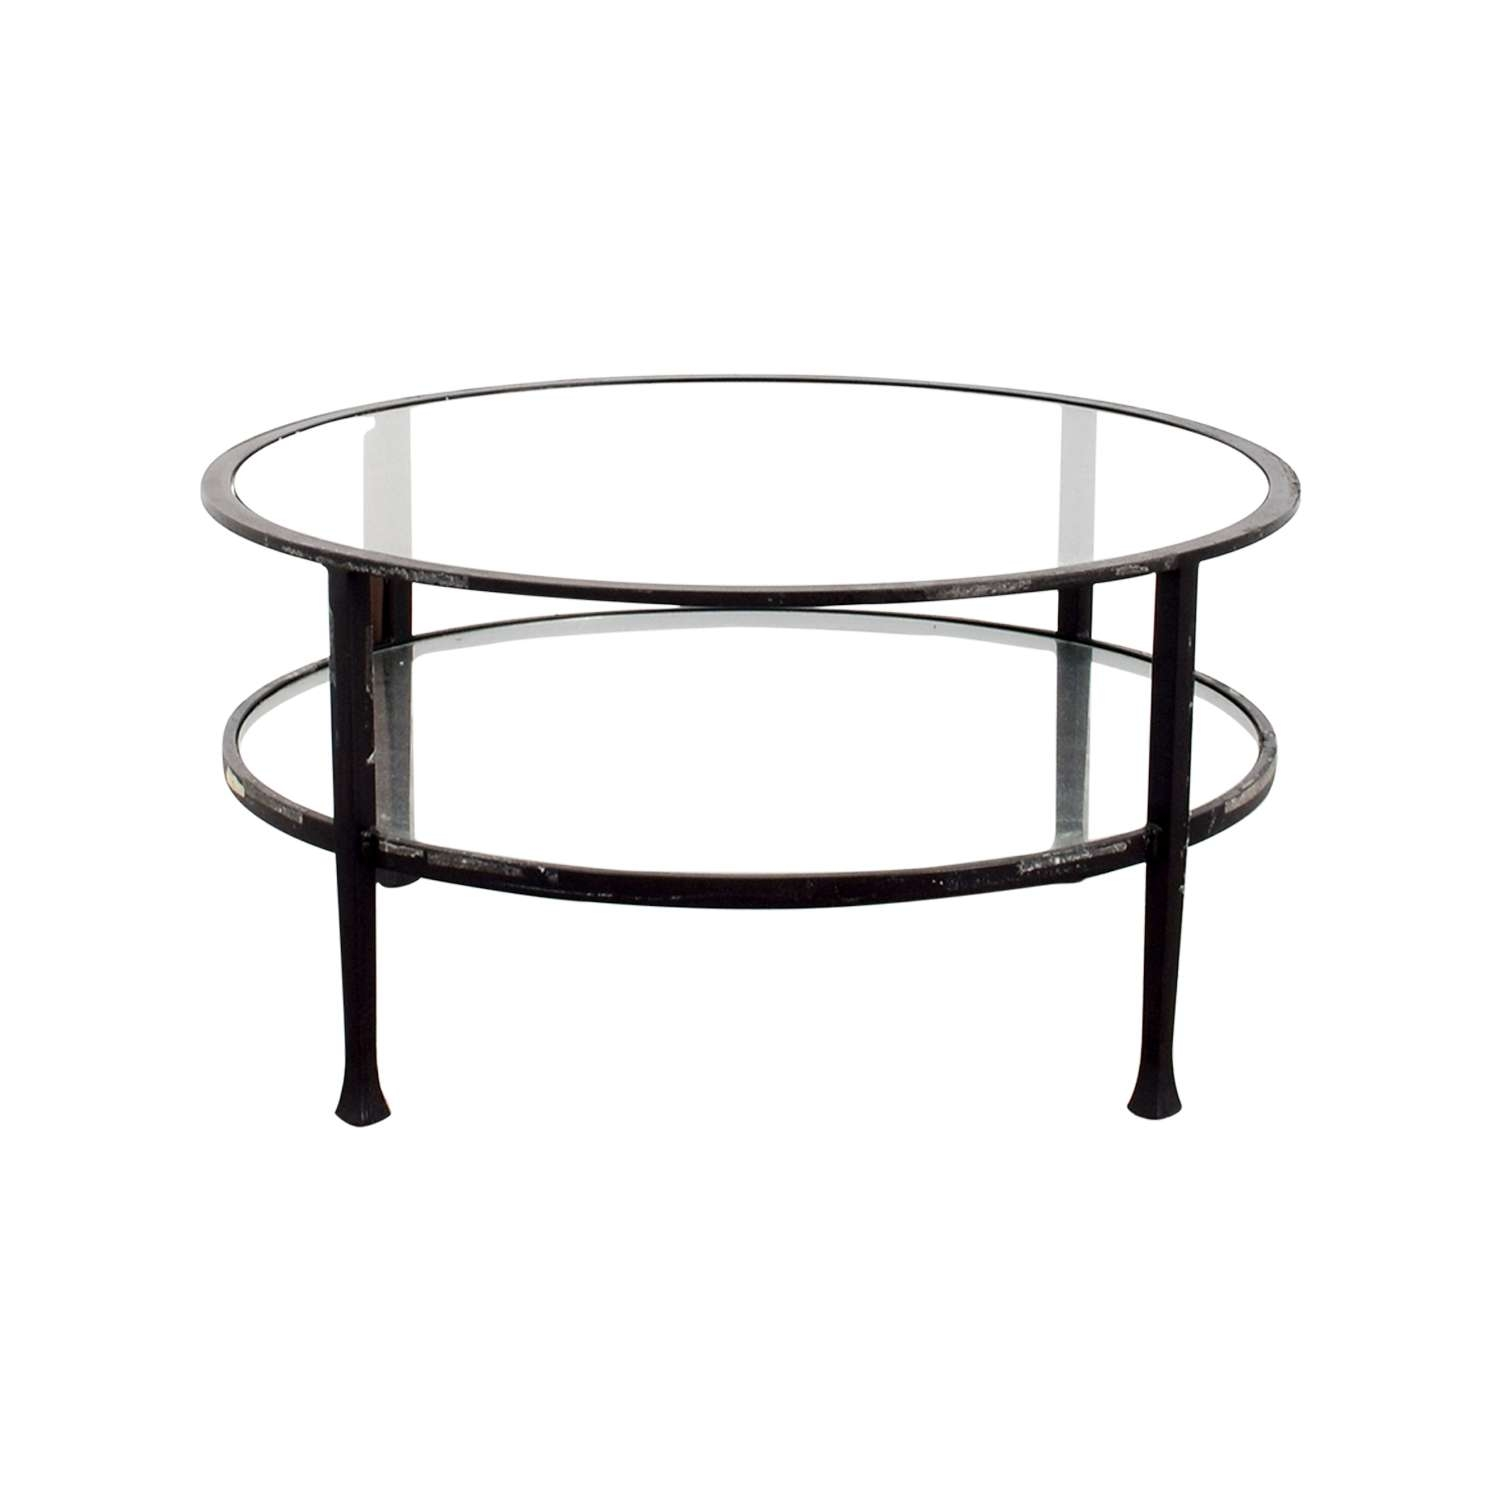 [%Favorite Round Glass Coffee Tables With 84% Off – Pottery Barn Pottery Barn Round Glass Coffee Table / Tables|84% Off – Pottery Barn Pottery Barn Round Glass Coffee Table / Tables With Regard To Well Known Round Glass Coffee Tables%] (View 1 of 20)